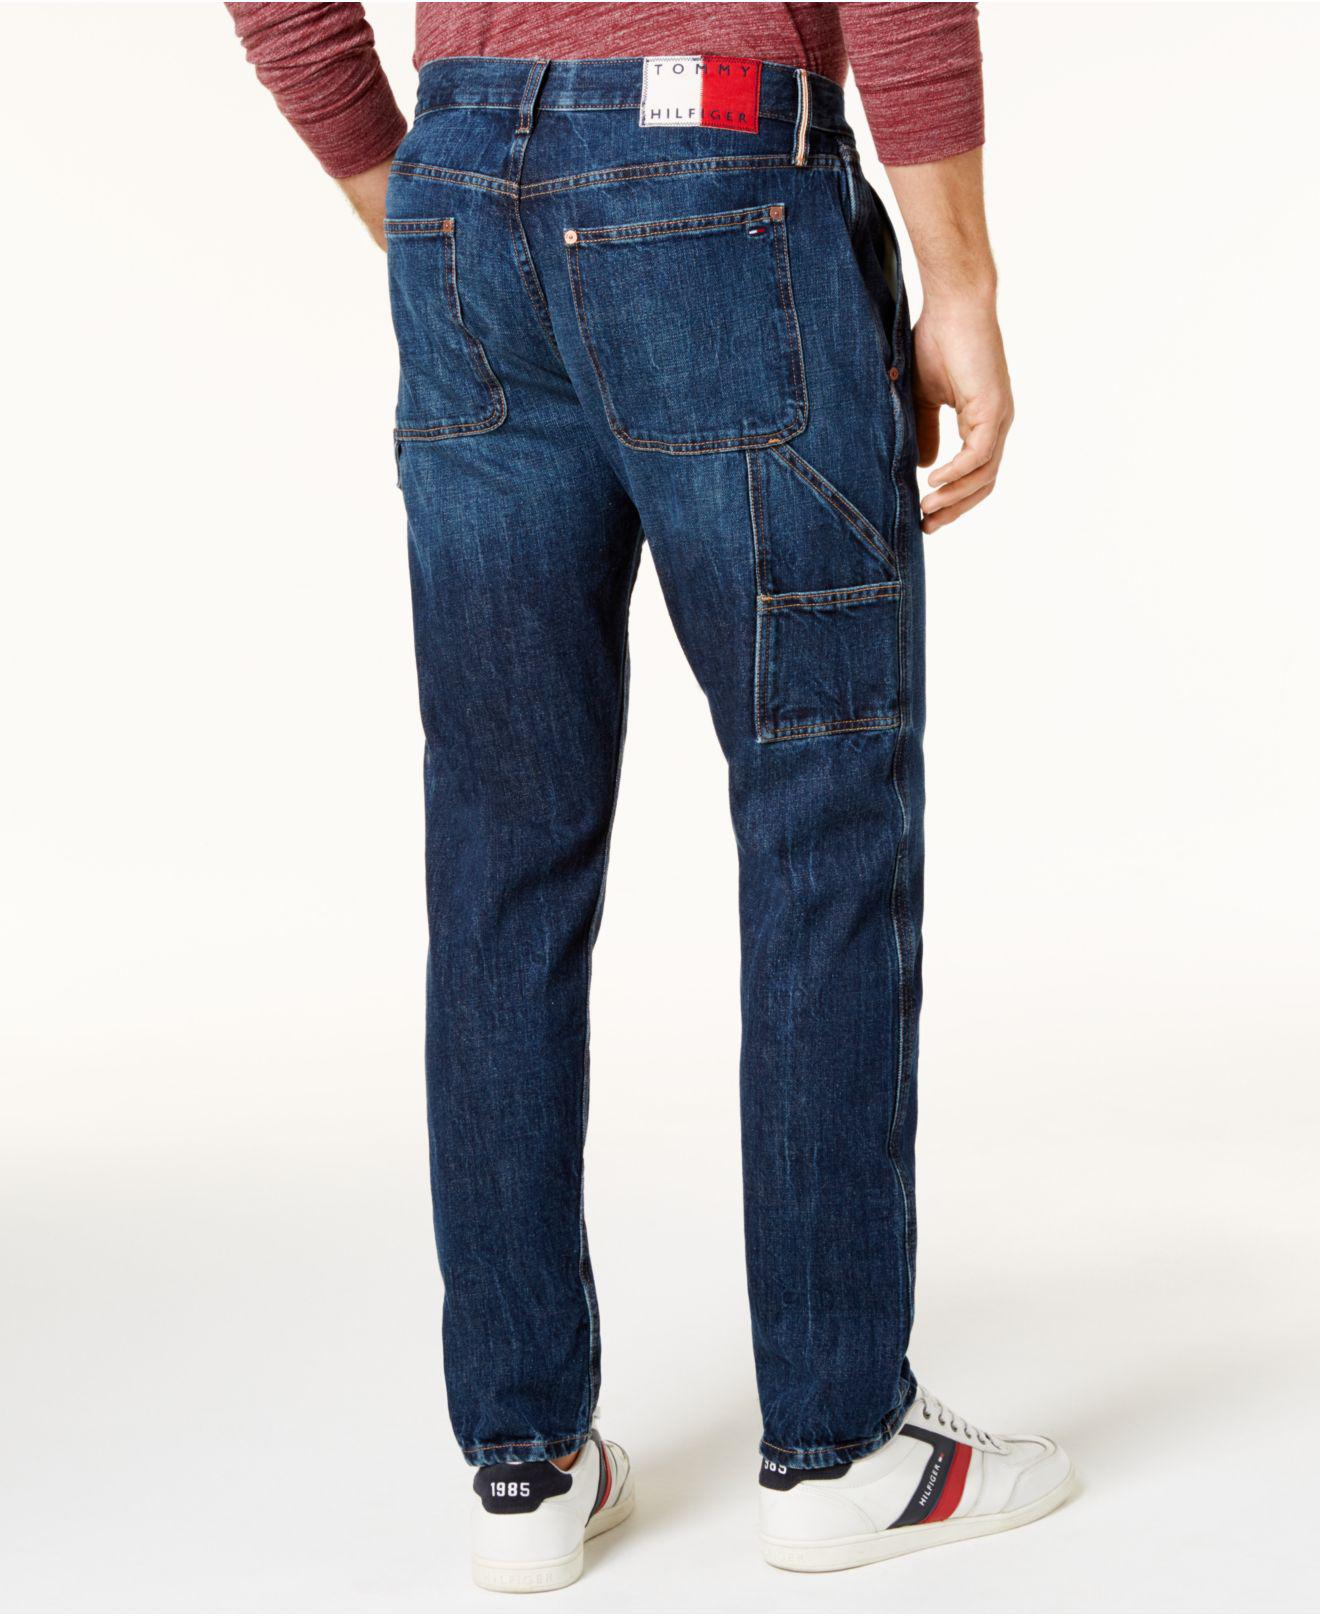 Tommy Hilfiger Men/'s Medium Wash Relaxed Tapered Carpenter Jeans